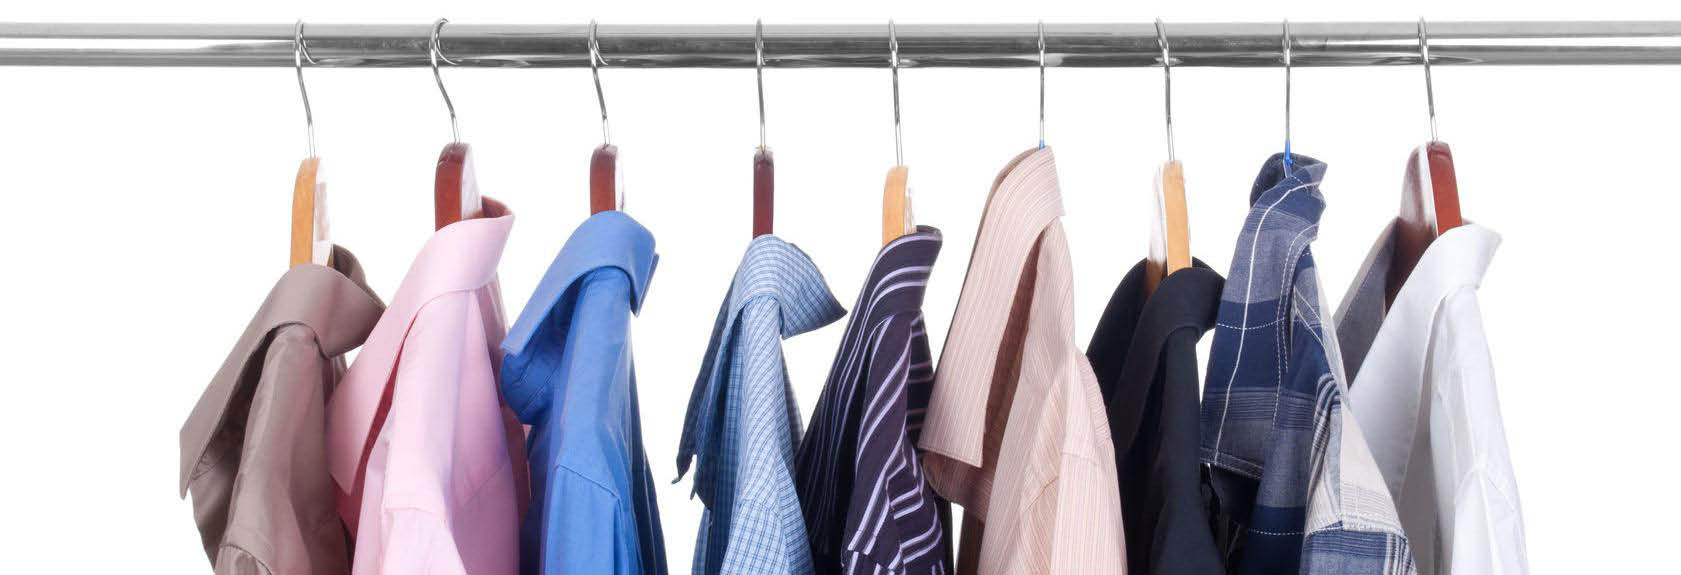 stella professional dry cleaners, stella dry cleaners, dry cleaners, dry cleaner valpak, newtown sq